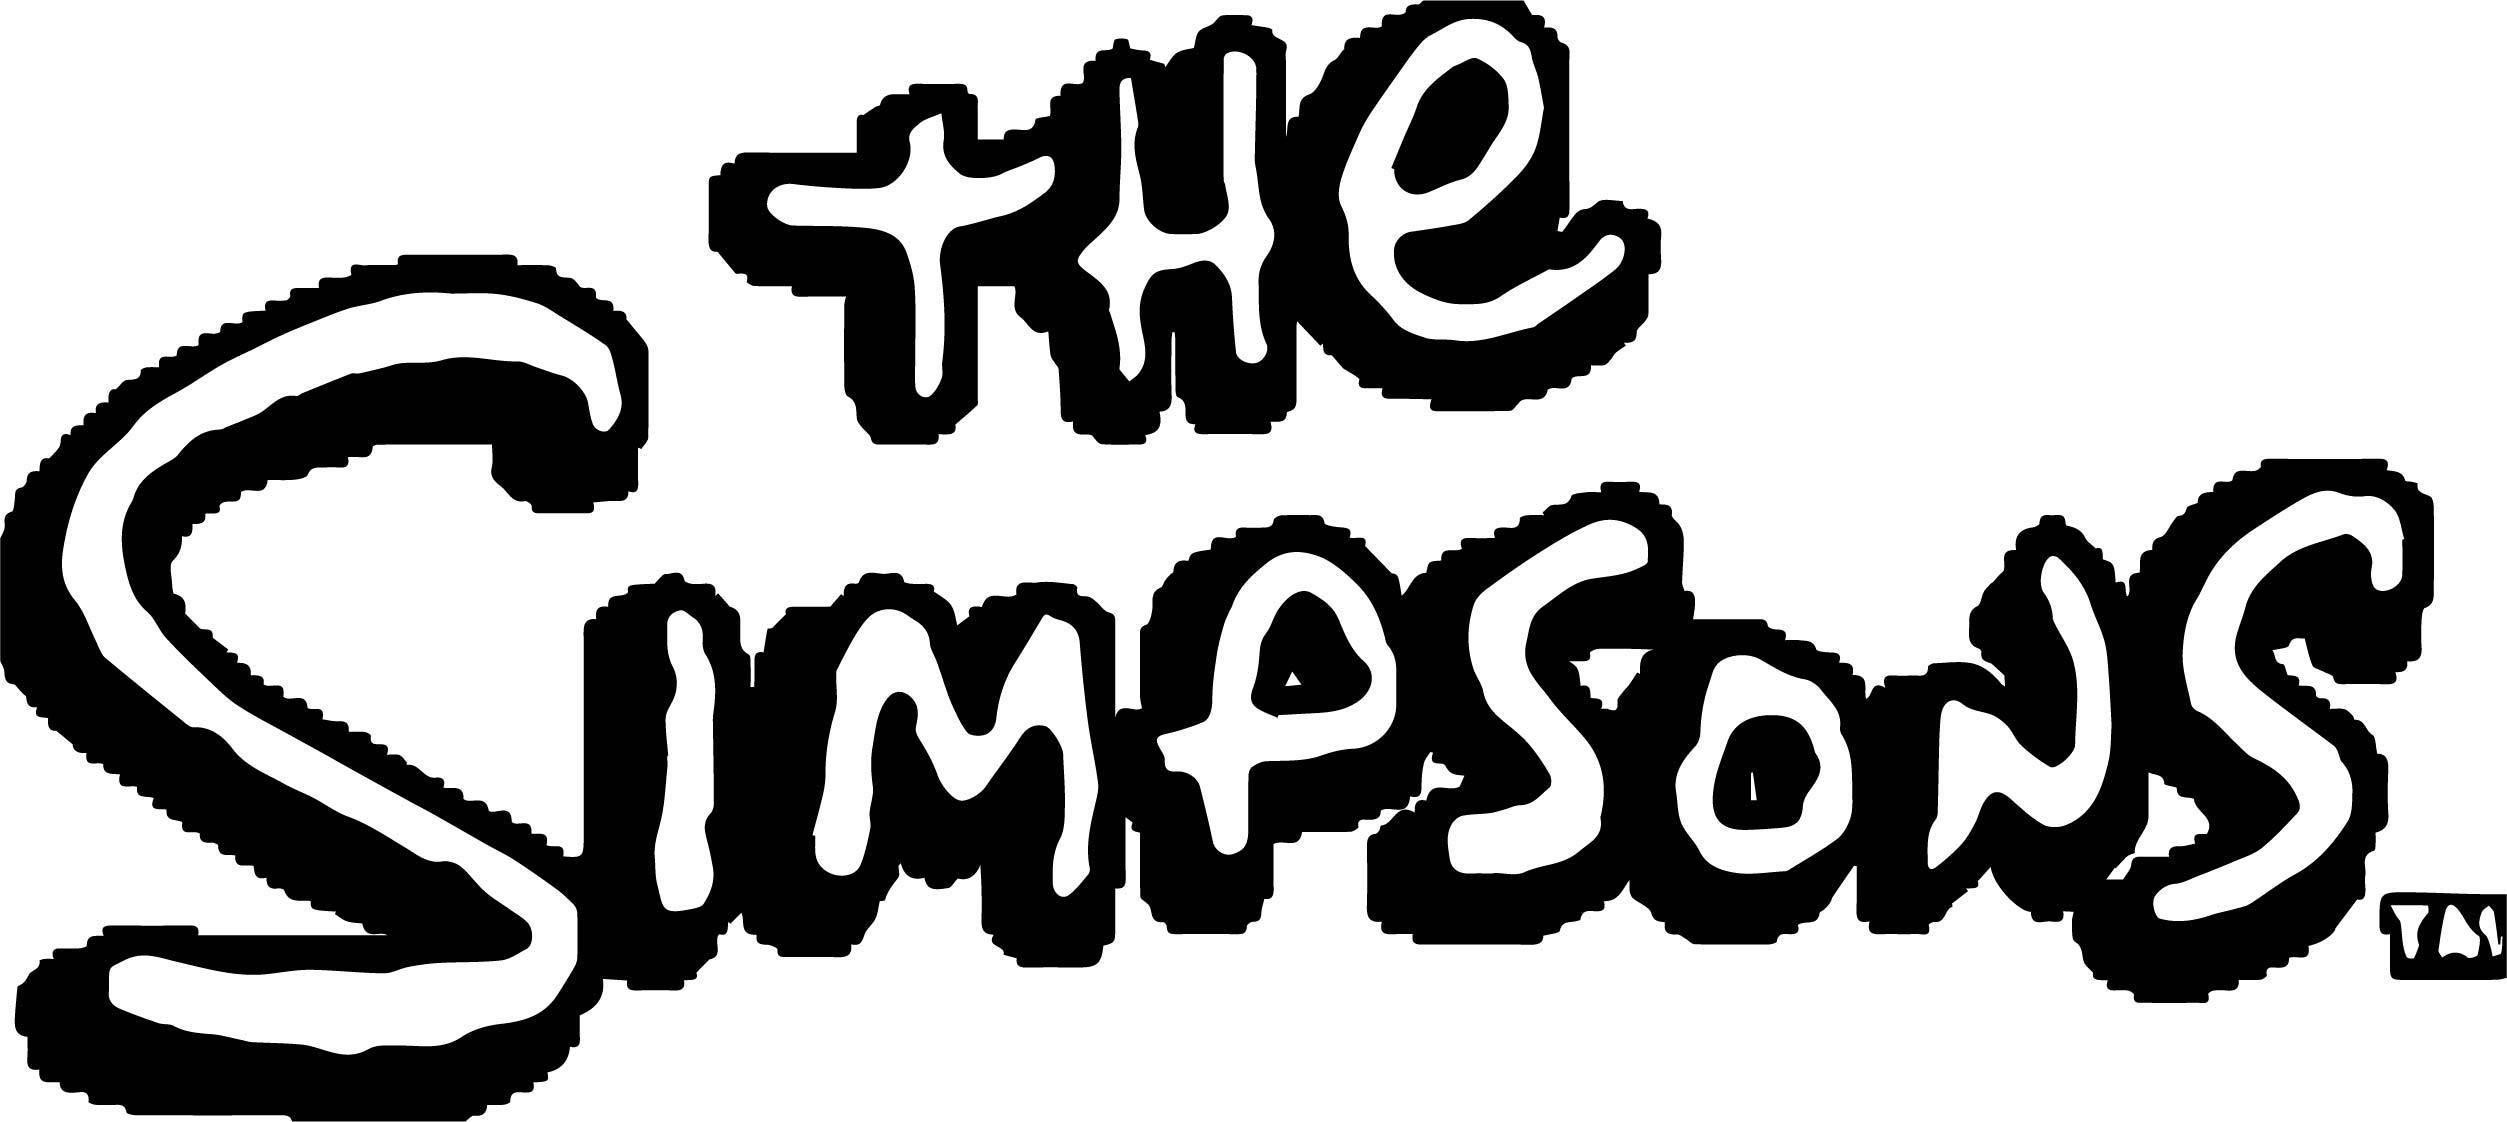 The Simpsons Logo Coloring Page